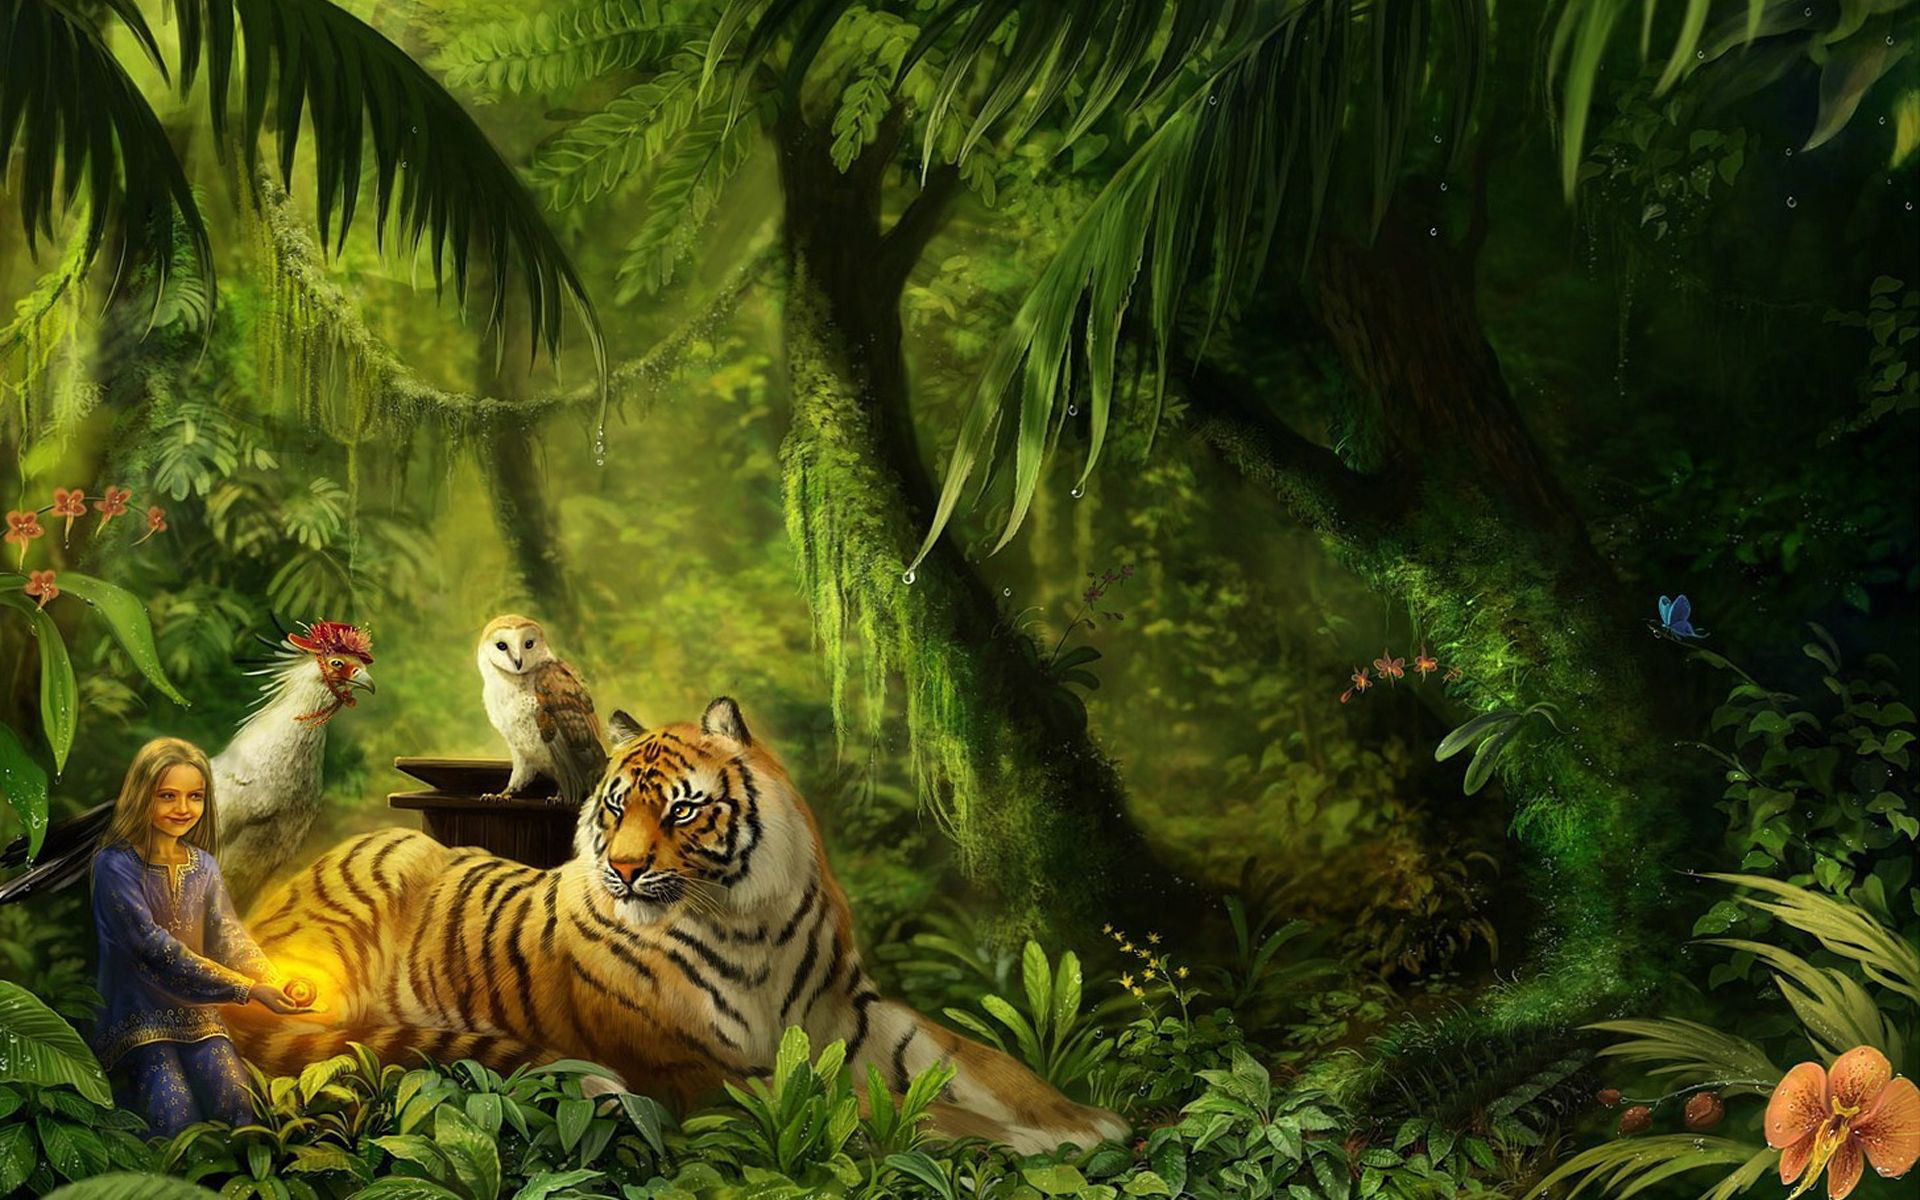 Wallpapersafari: Jungle Animal Wallpaper